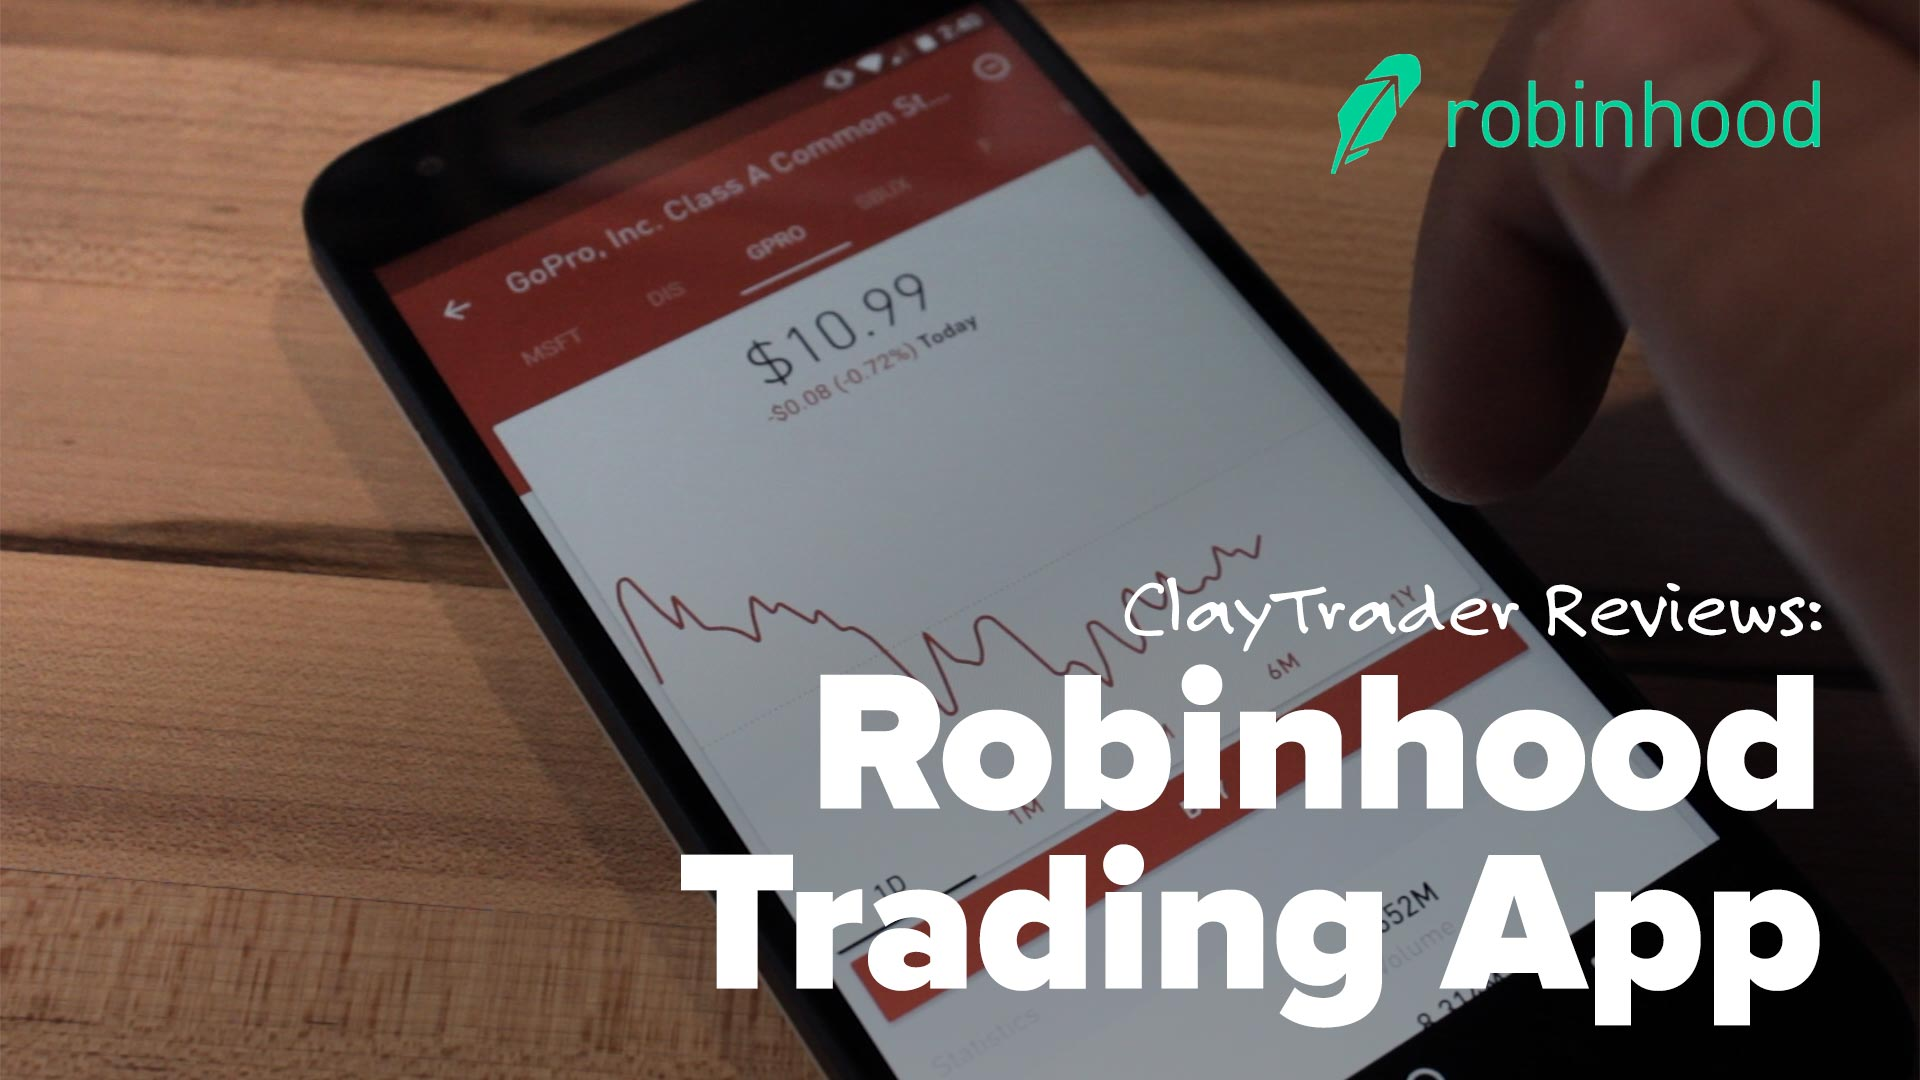 10% Off Robinhood